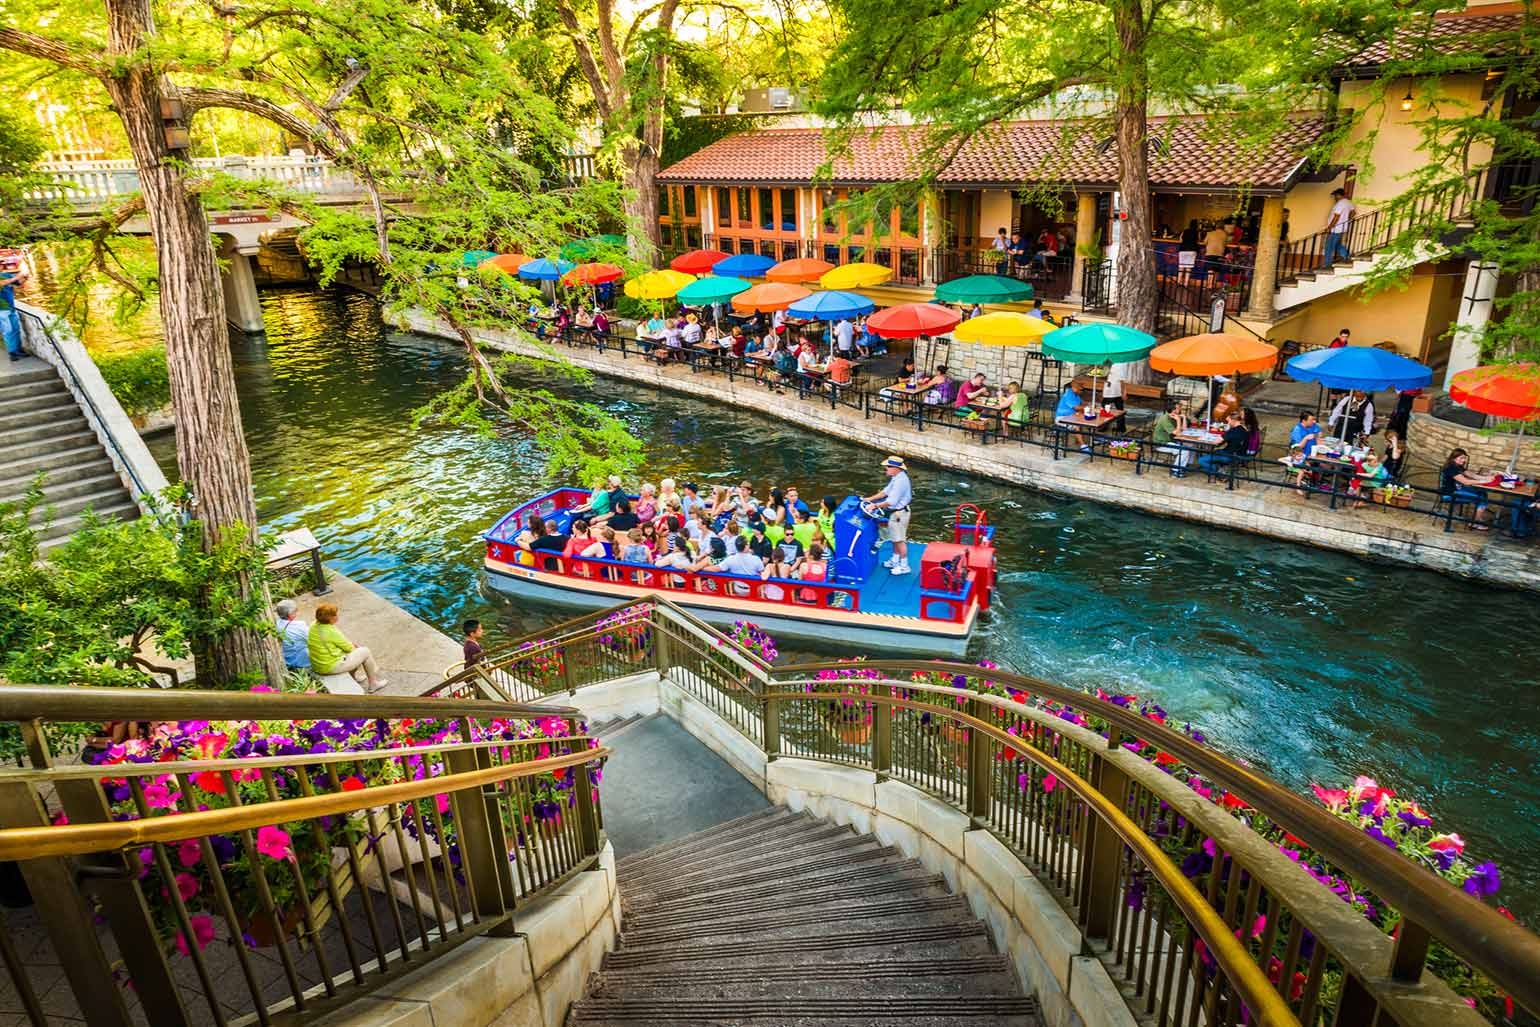 The Riverwalk, the San Antonio Park Scenic Canal